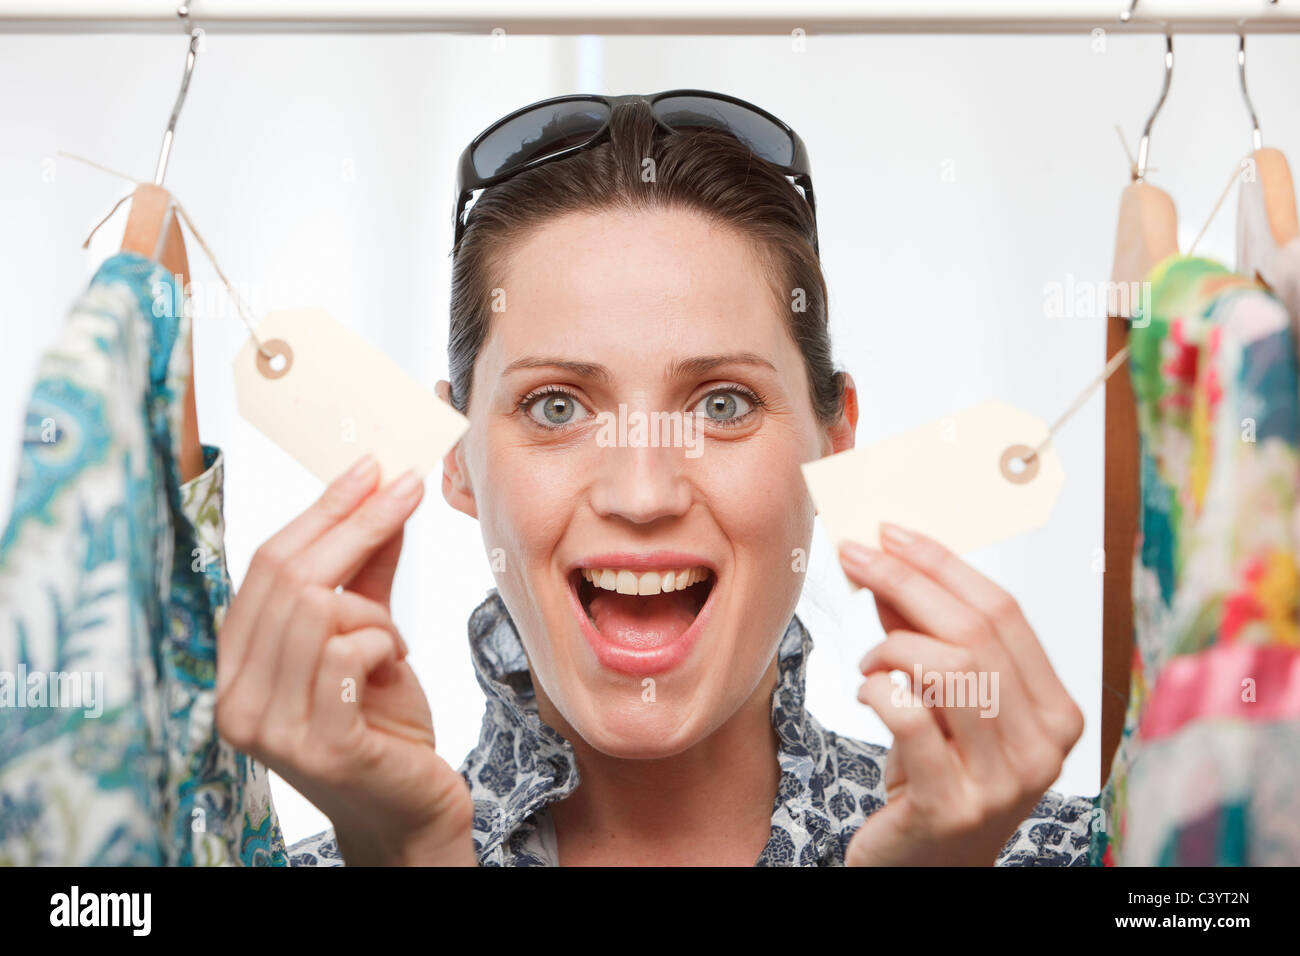 woman smiling holding price tags - Stock Image